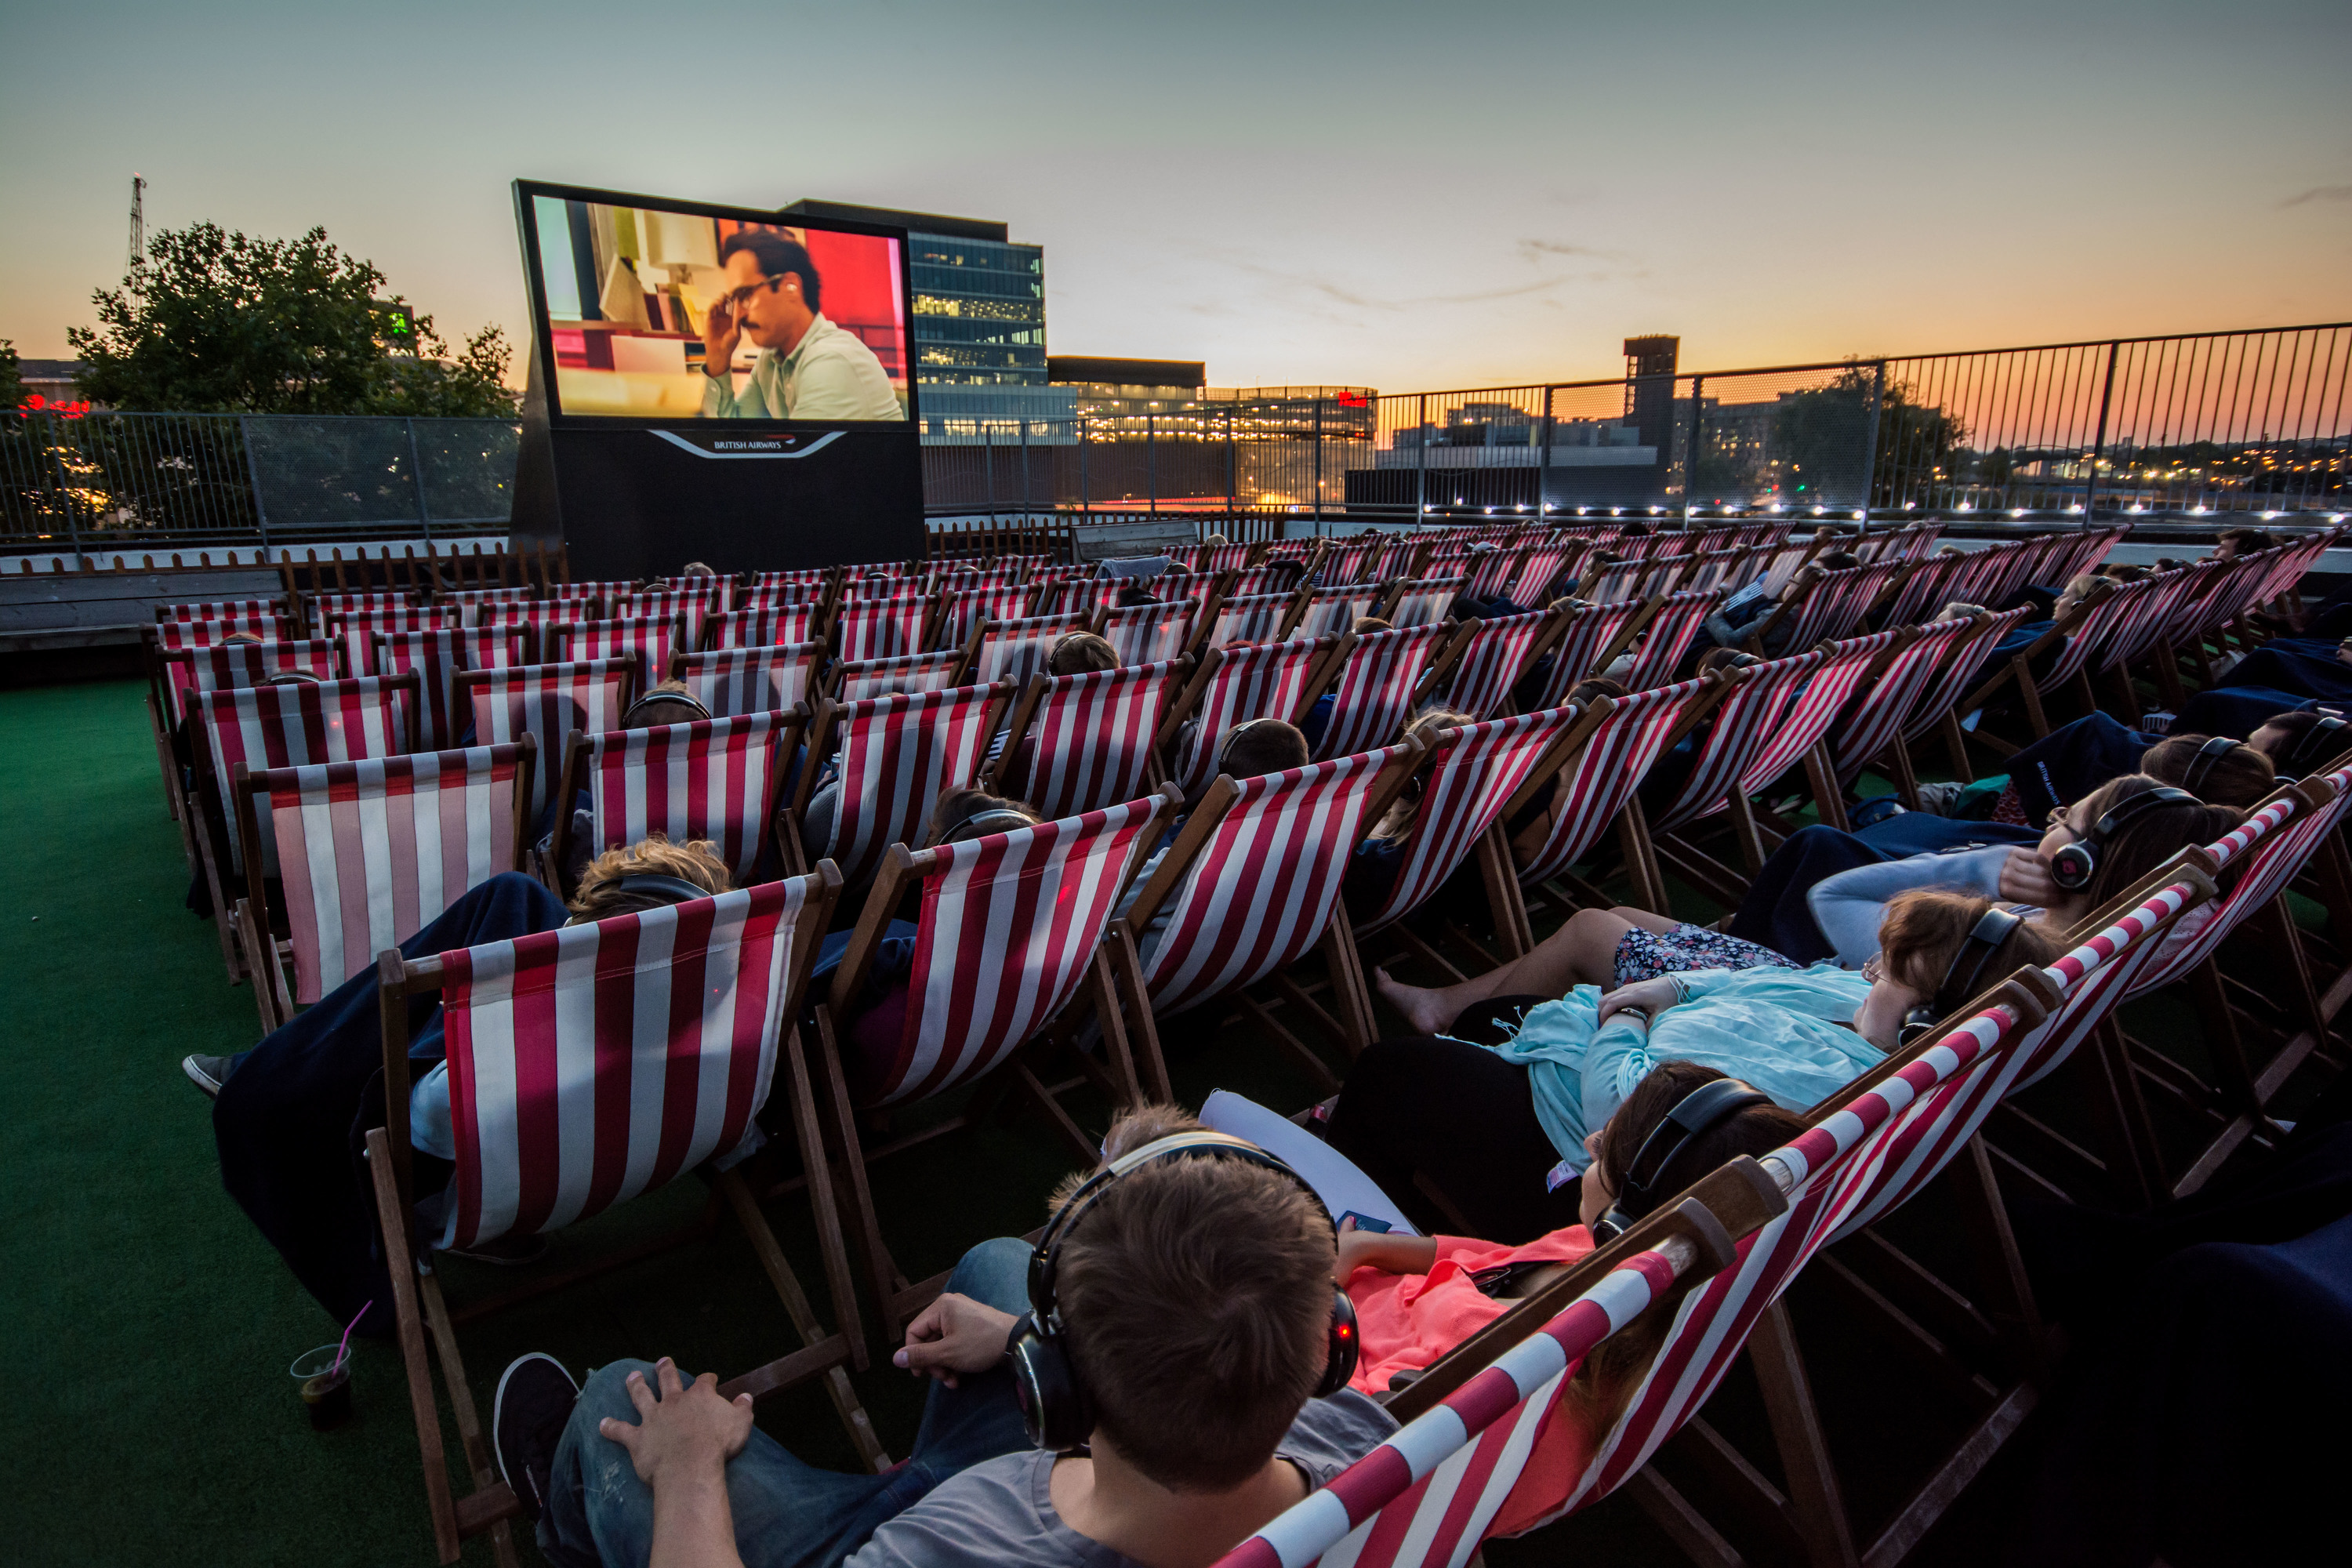 All of the outdoor movies in NYC this summer